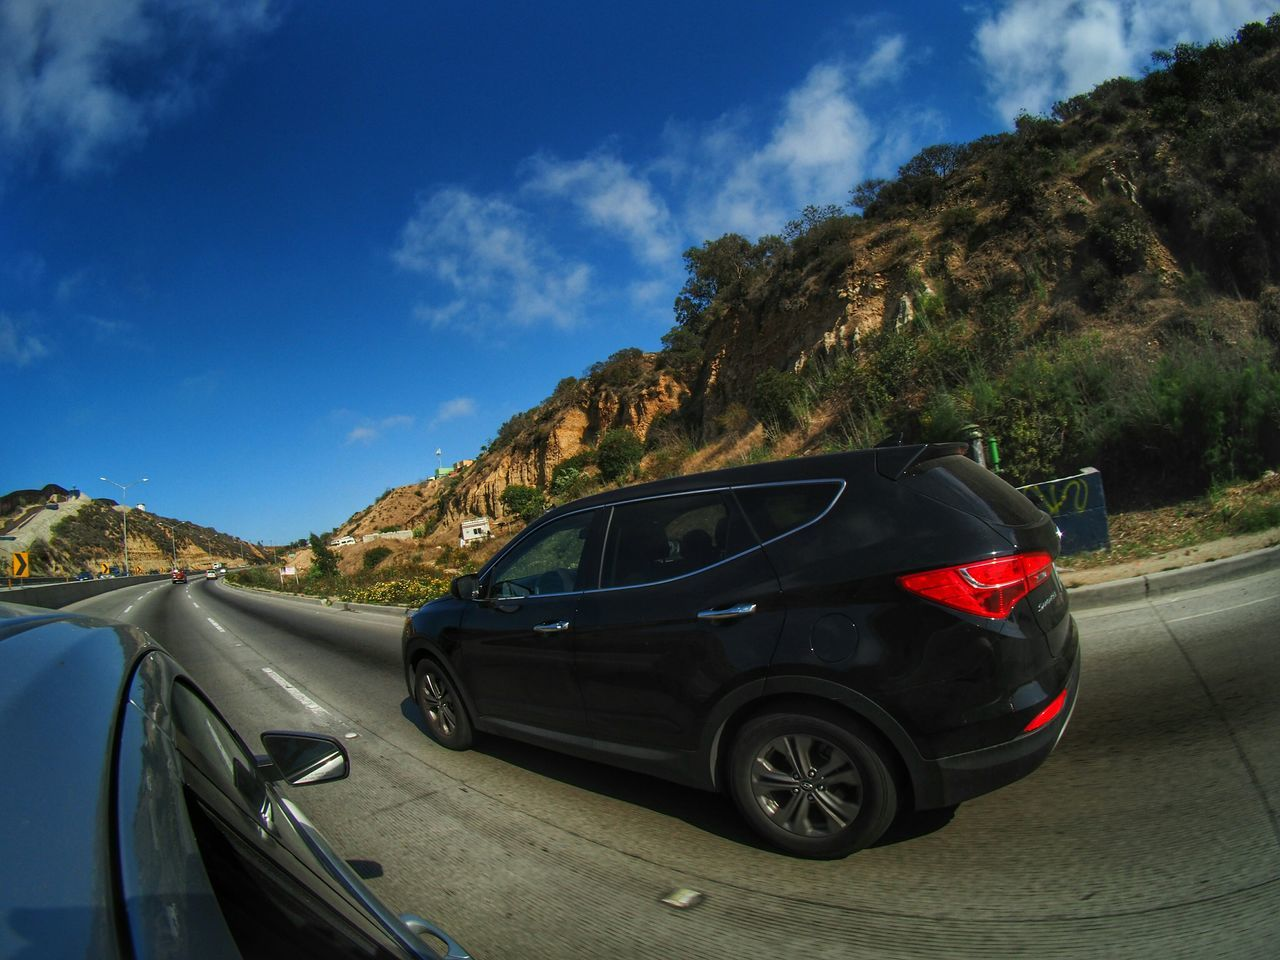 ✌. Cars Traveling Taking Photos Inthecar Ontheroad Urban Landscape Fisheye Road